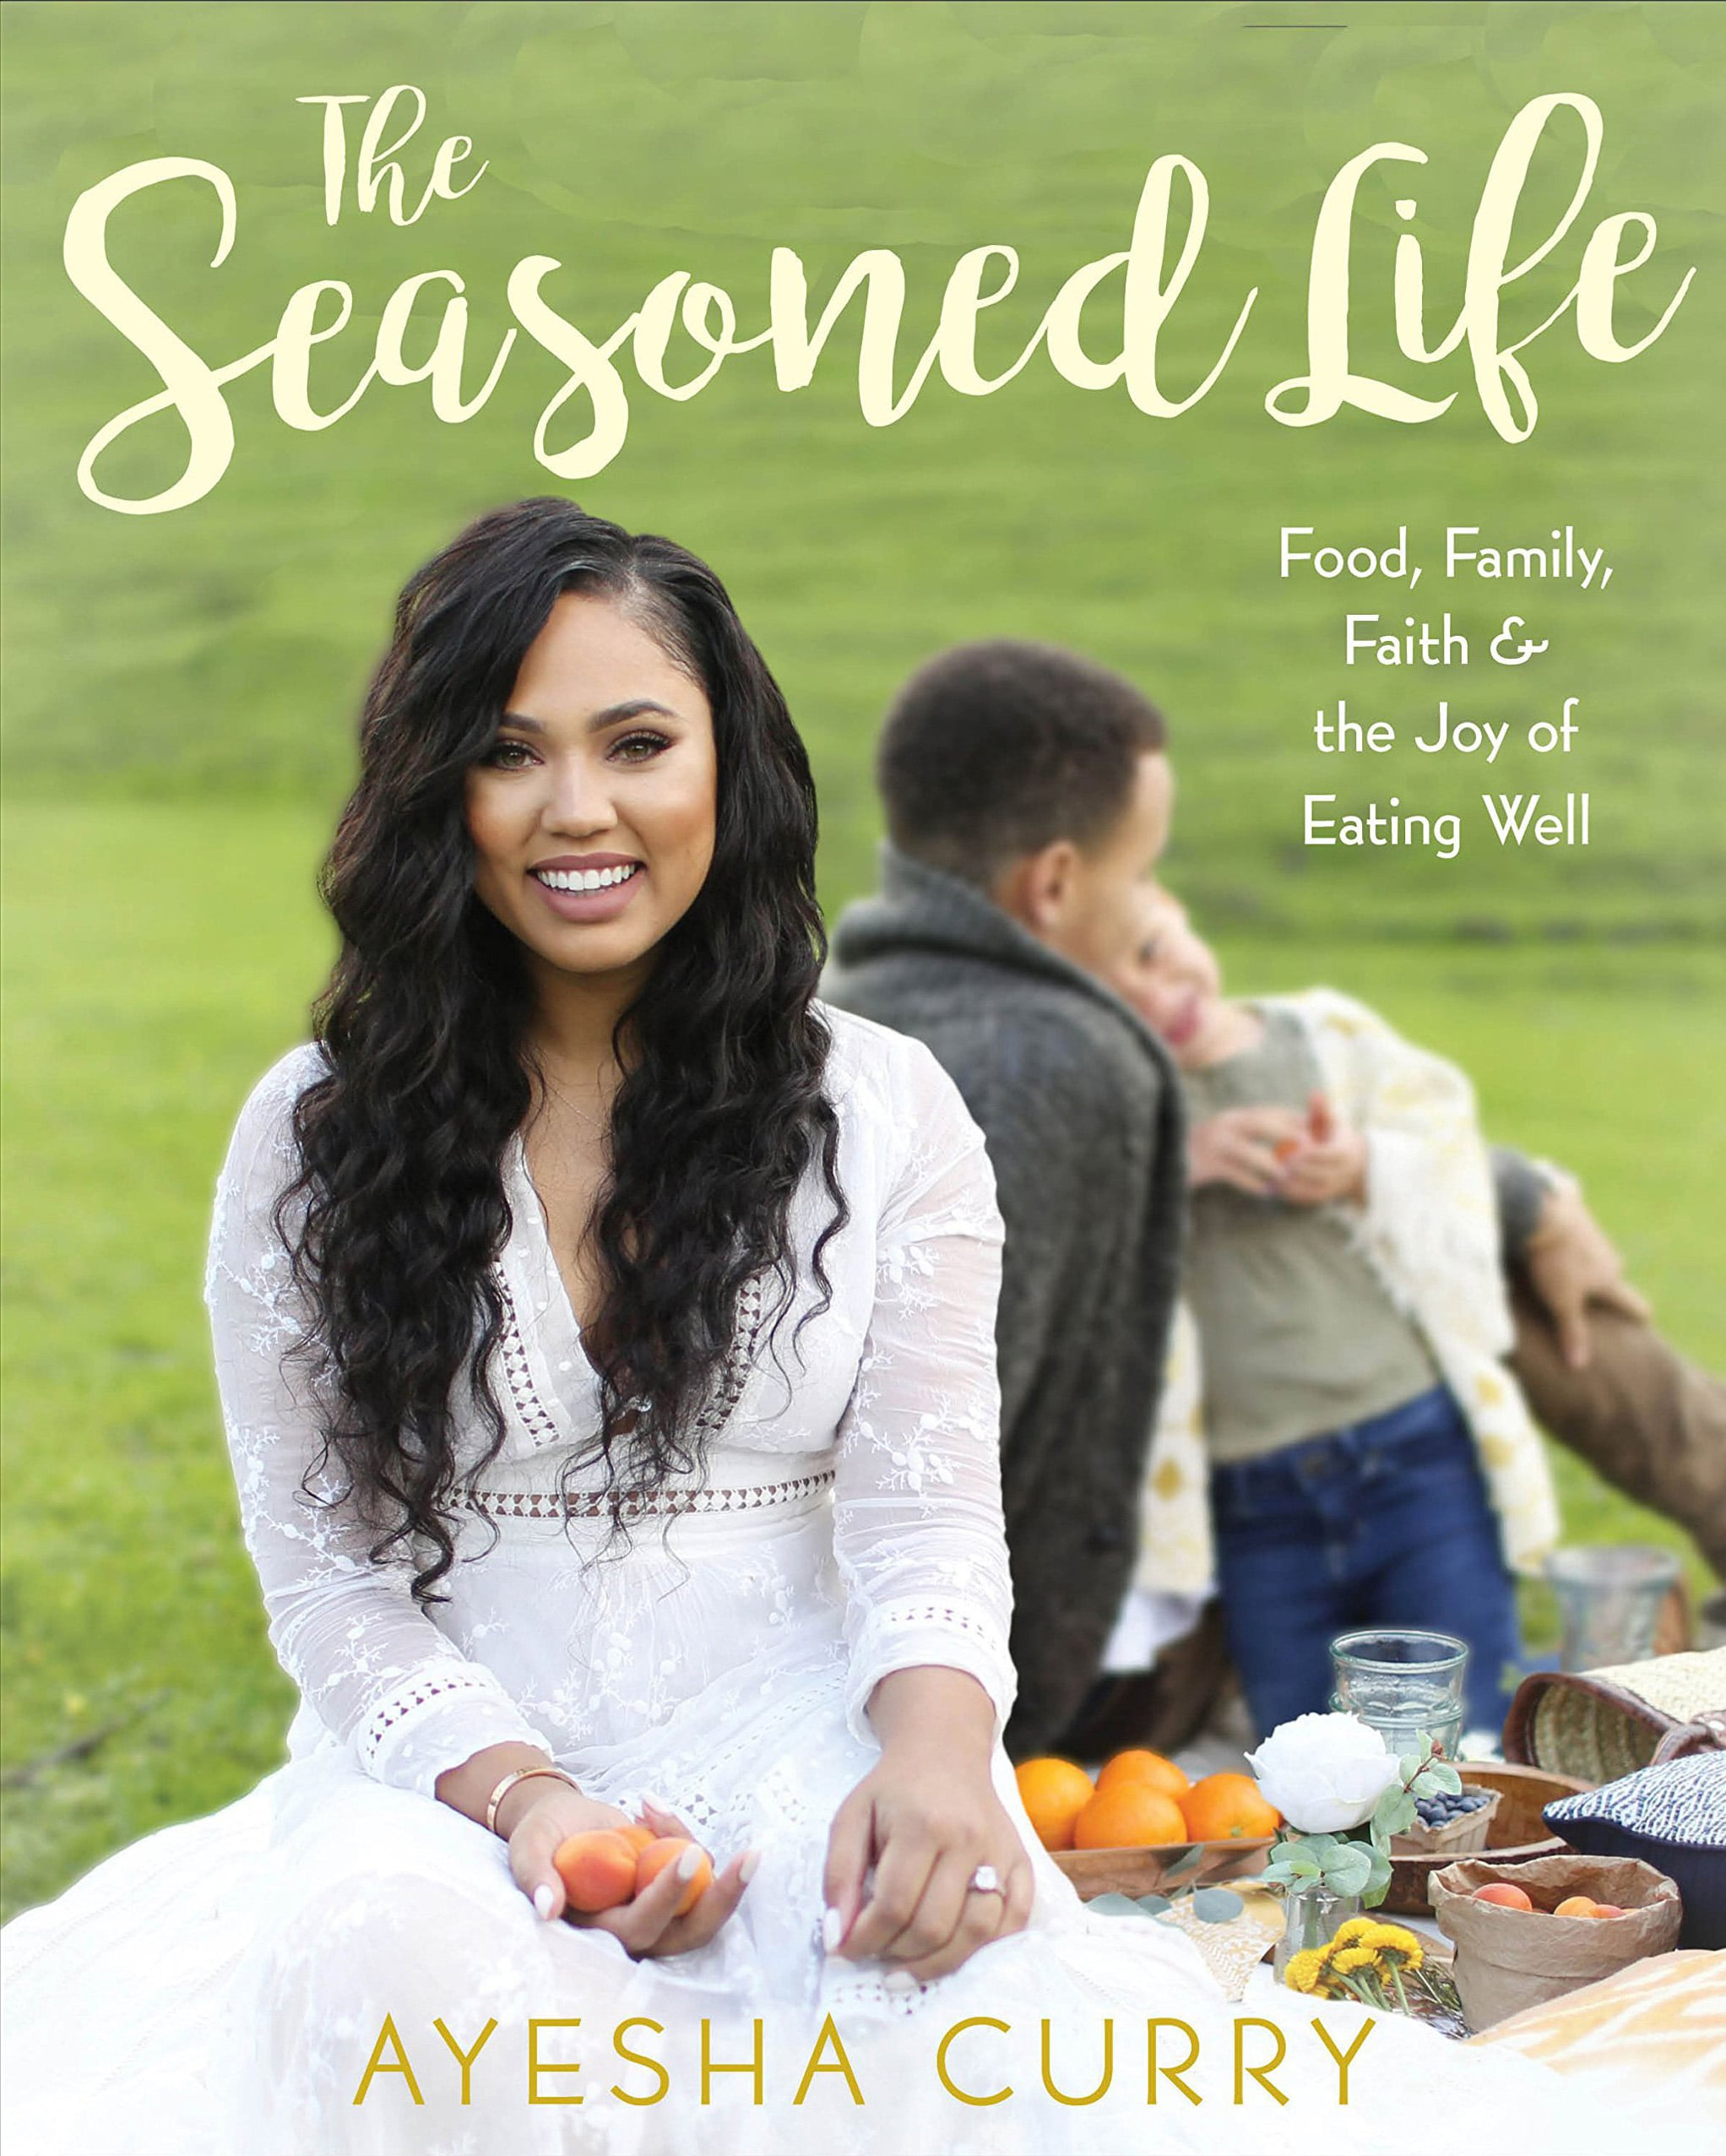 Ayesha currys the seasoned life cookbook review popsugar food is loved in my life somehow involves and revolves around food ayesha curry says in the introduction of her new cookbook the seasoned life food forumfinder Gallery